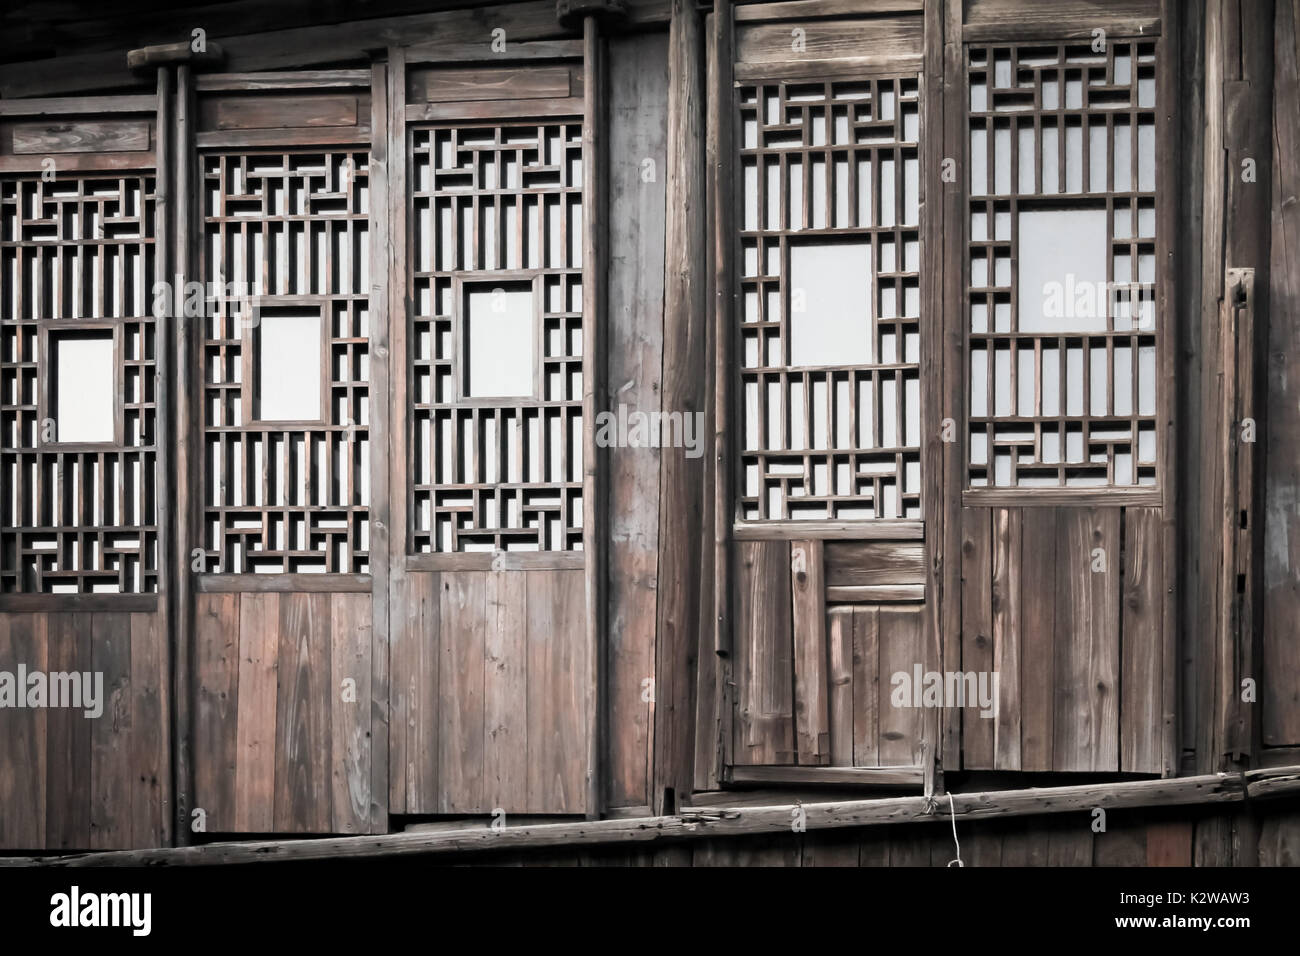 A Row Of Old Wooden Chinese Doors   Stock Image